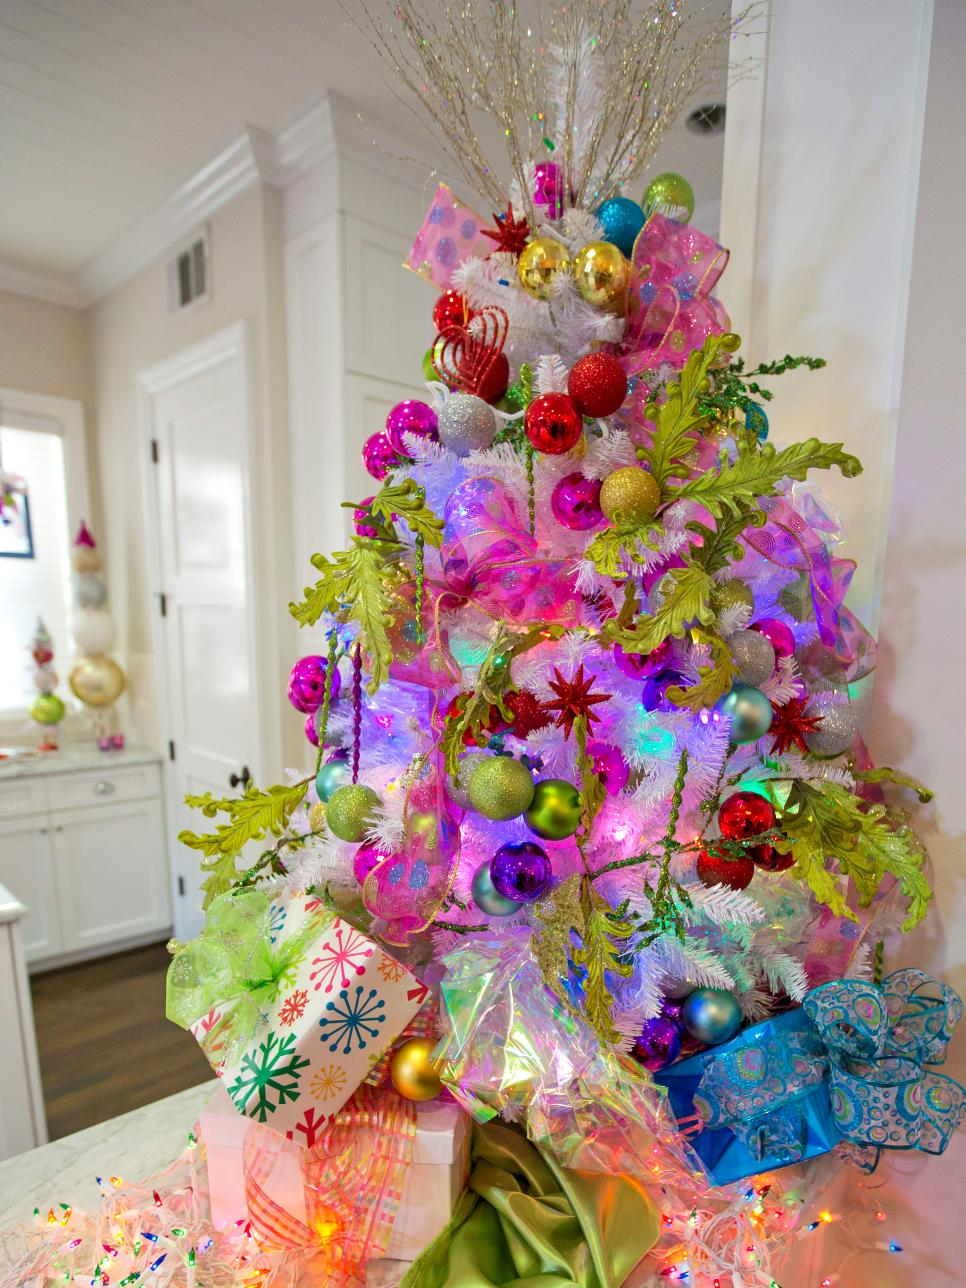 source - Colorful Christmas Decorations